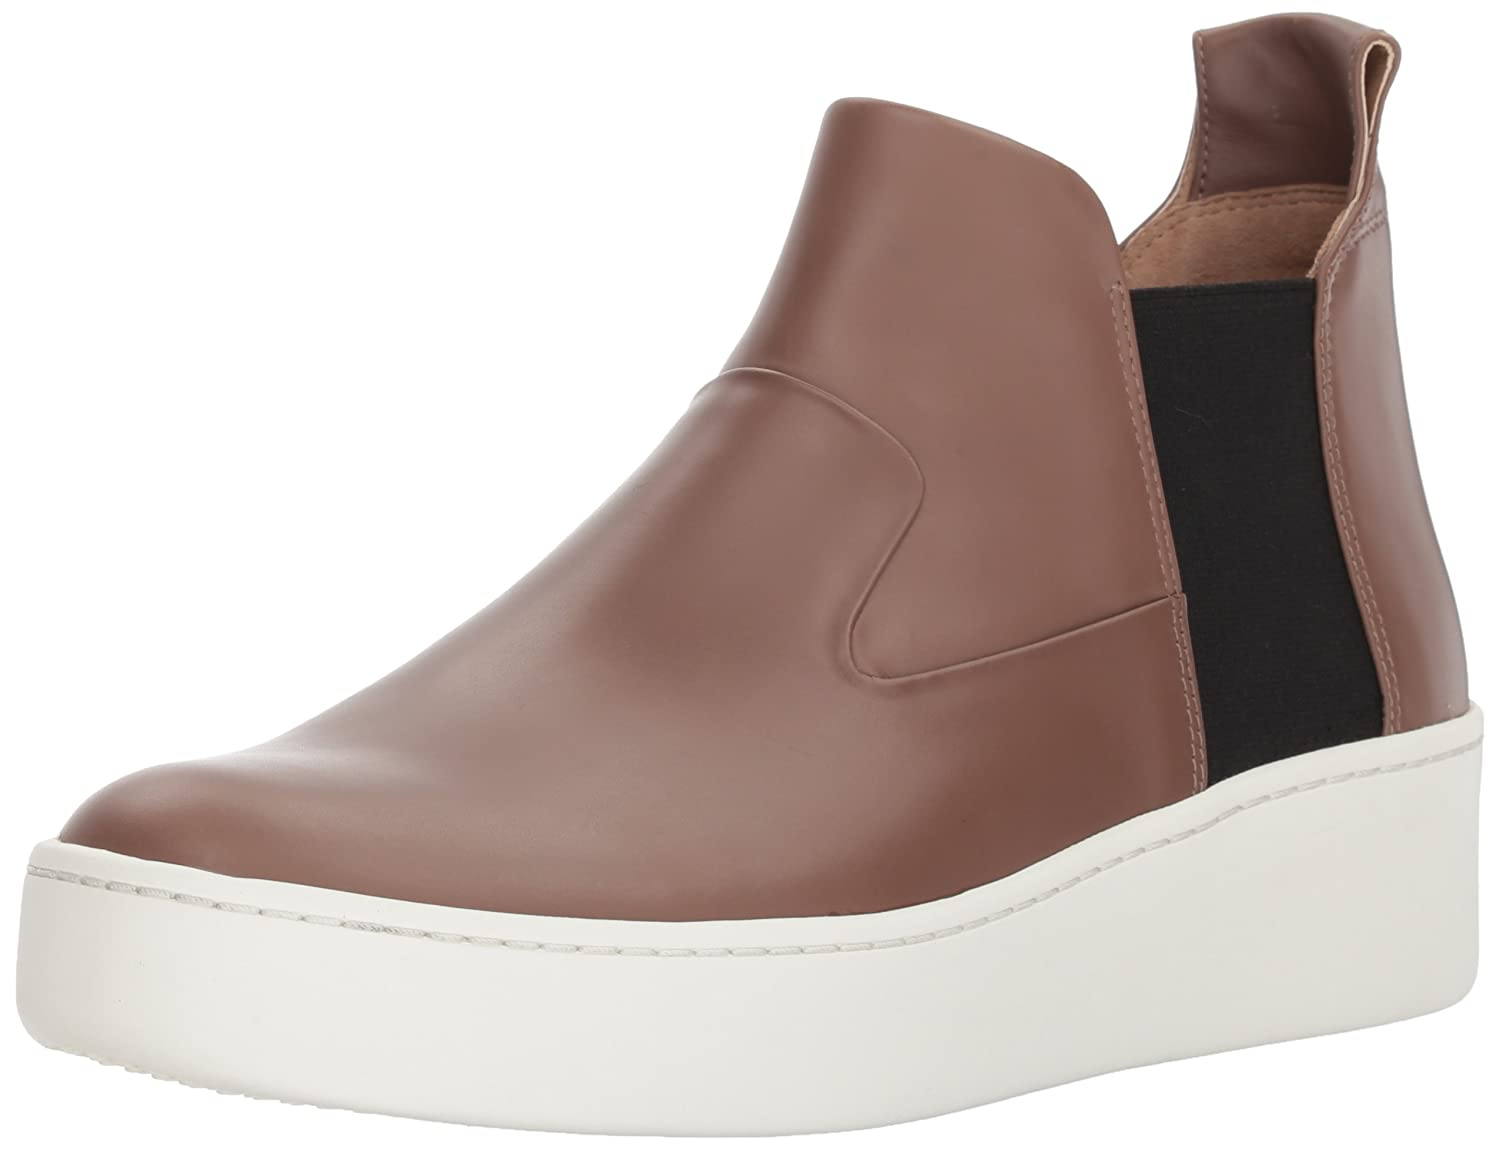 Via Spiga Women's Eren Mid-Height Sneaker B074T2NZNC 5 B(M) US|Mink Leather